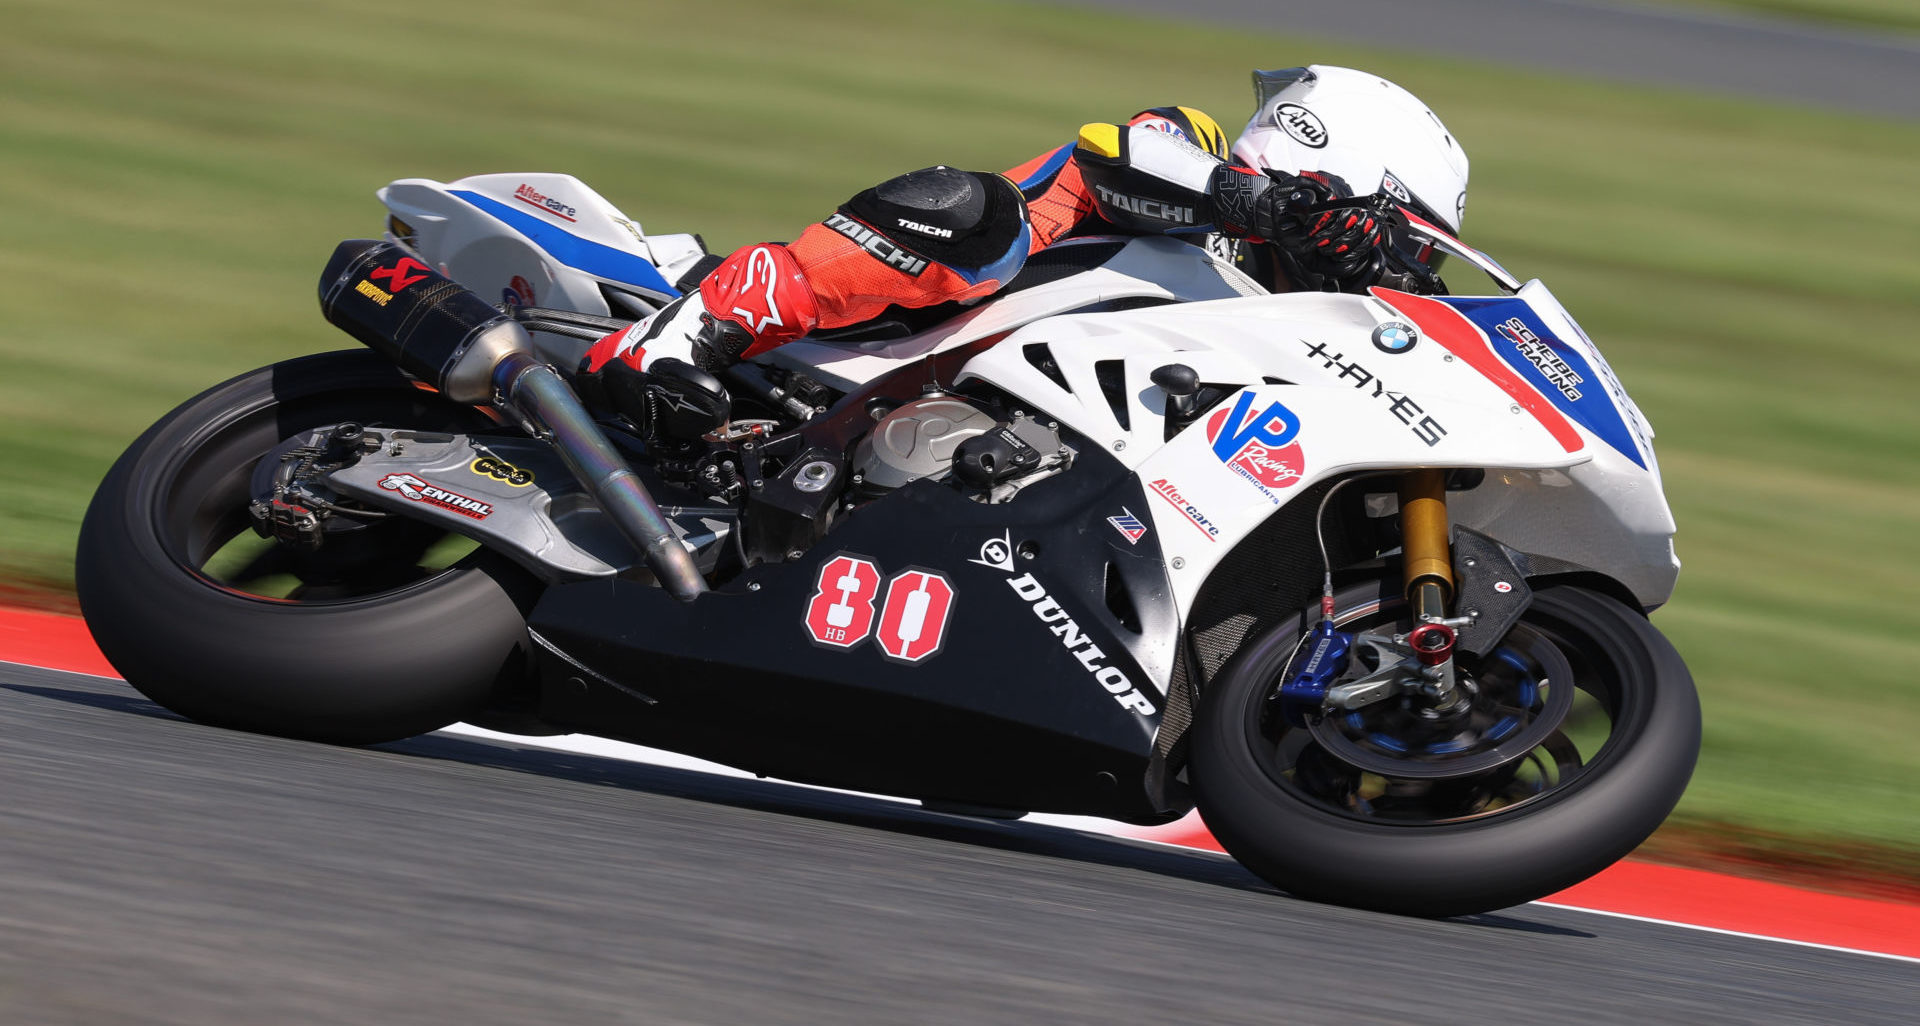 Hector Barbera (80) at speed on his Aftercare BMW S1000RR Superbike. Photo by Brian J. Nelson, courtesy Scheibe Racing.